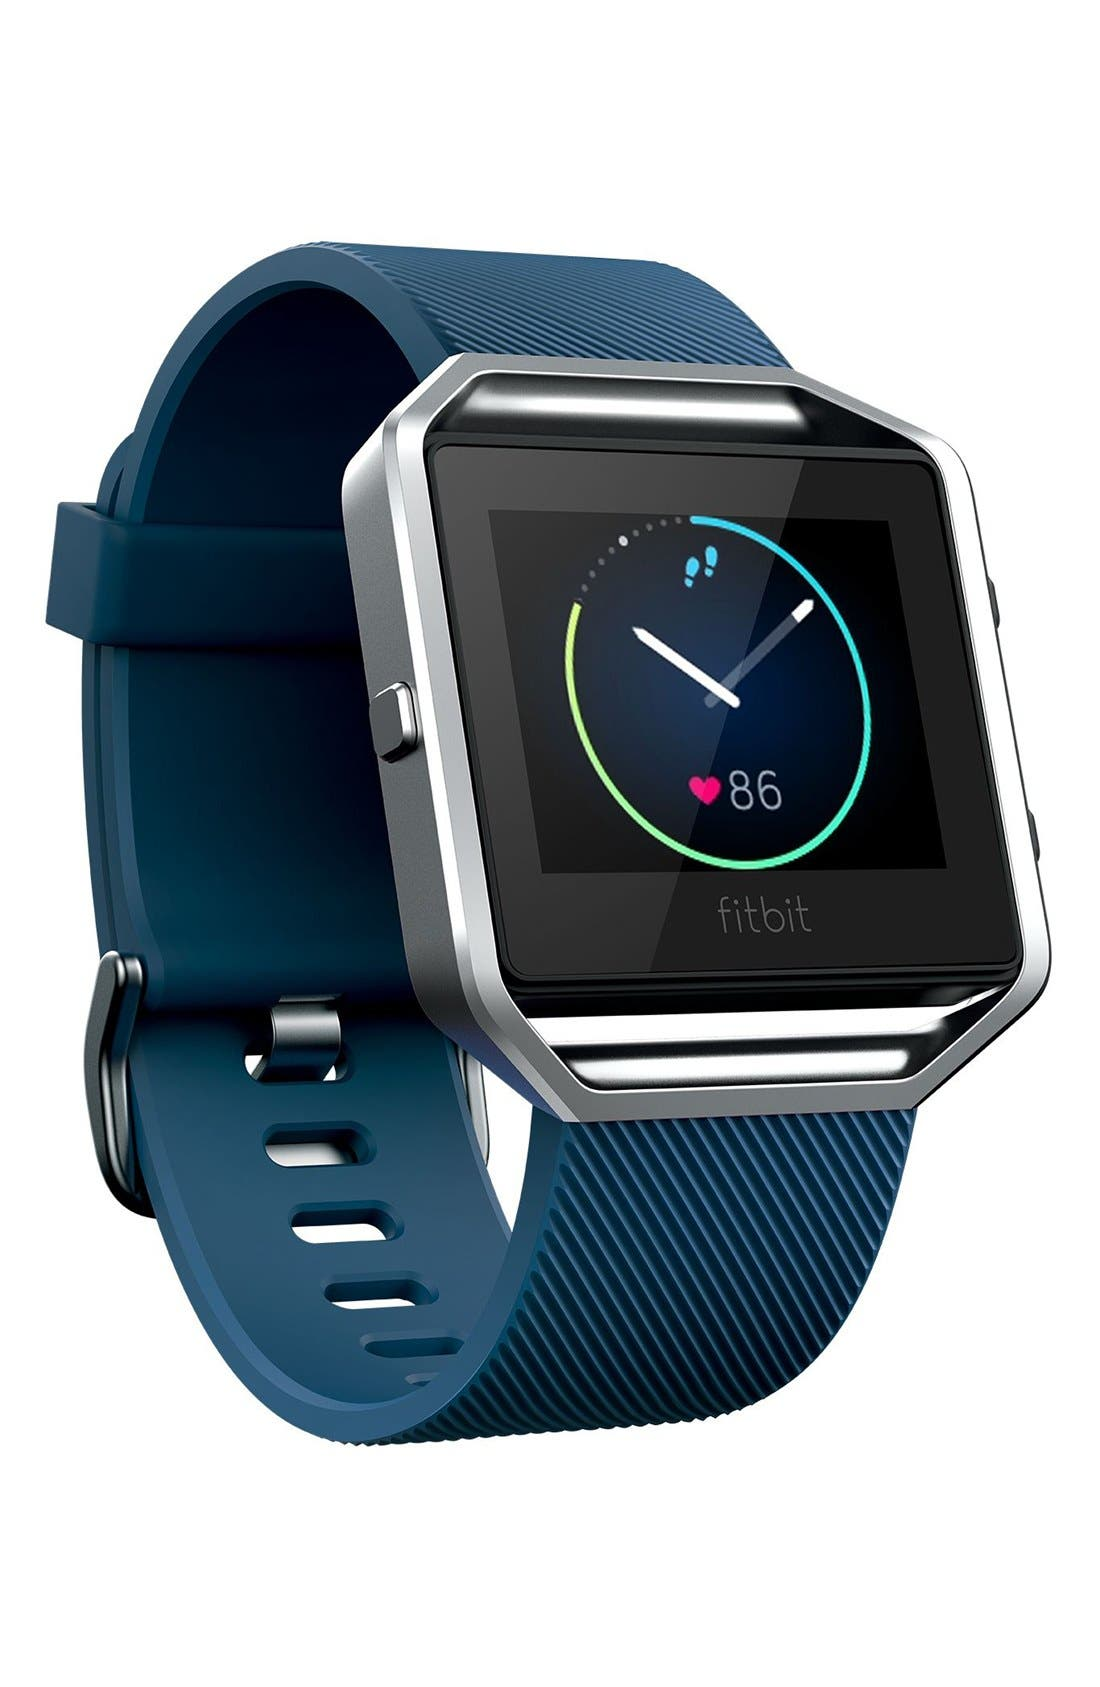 Alternate Image 1 Selected - Fitbit Blaze Smart Fitness Watch